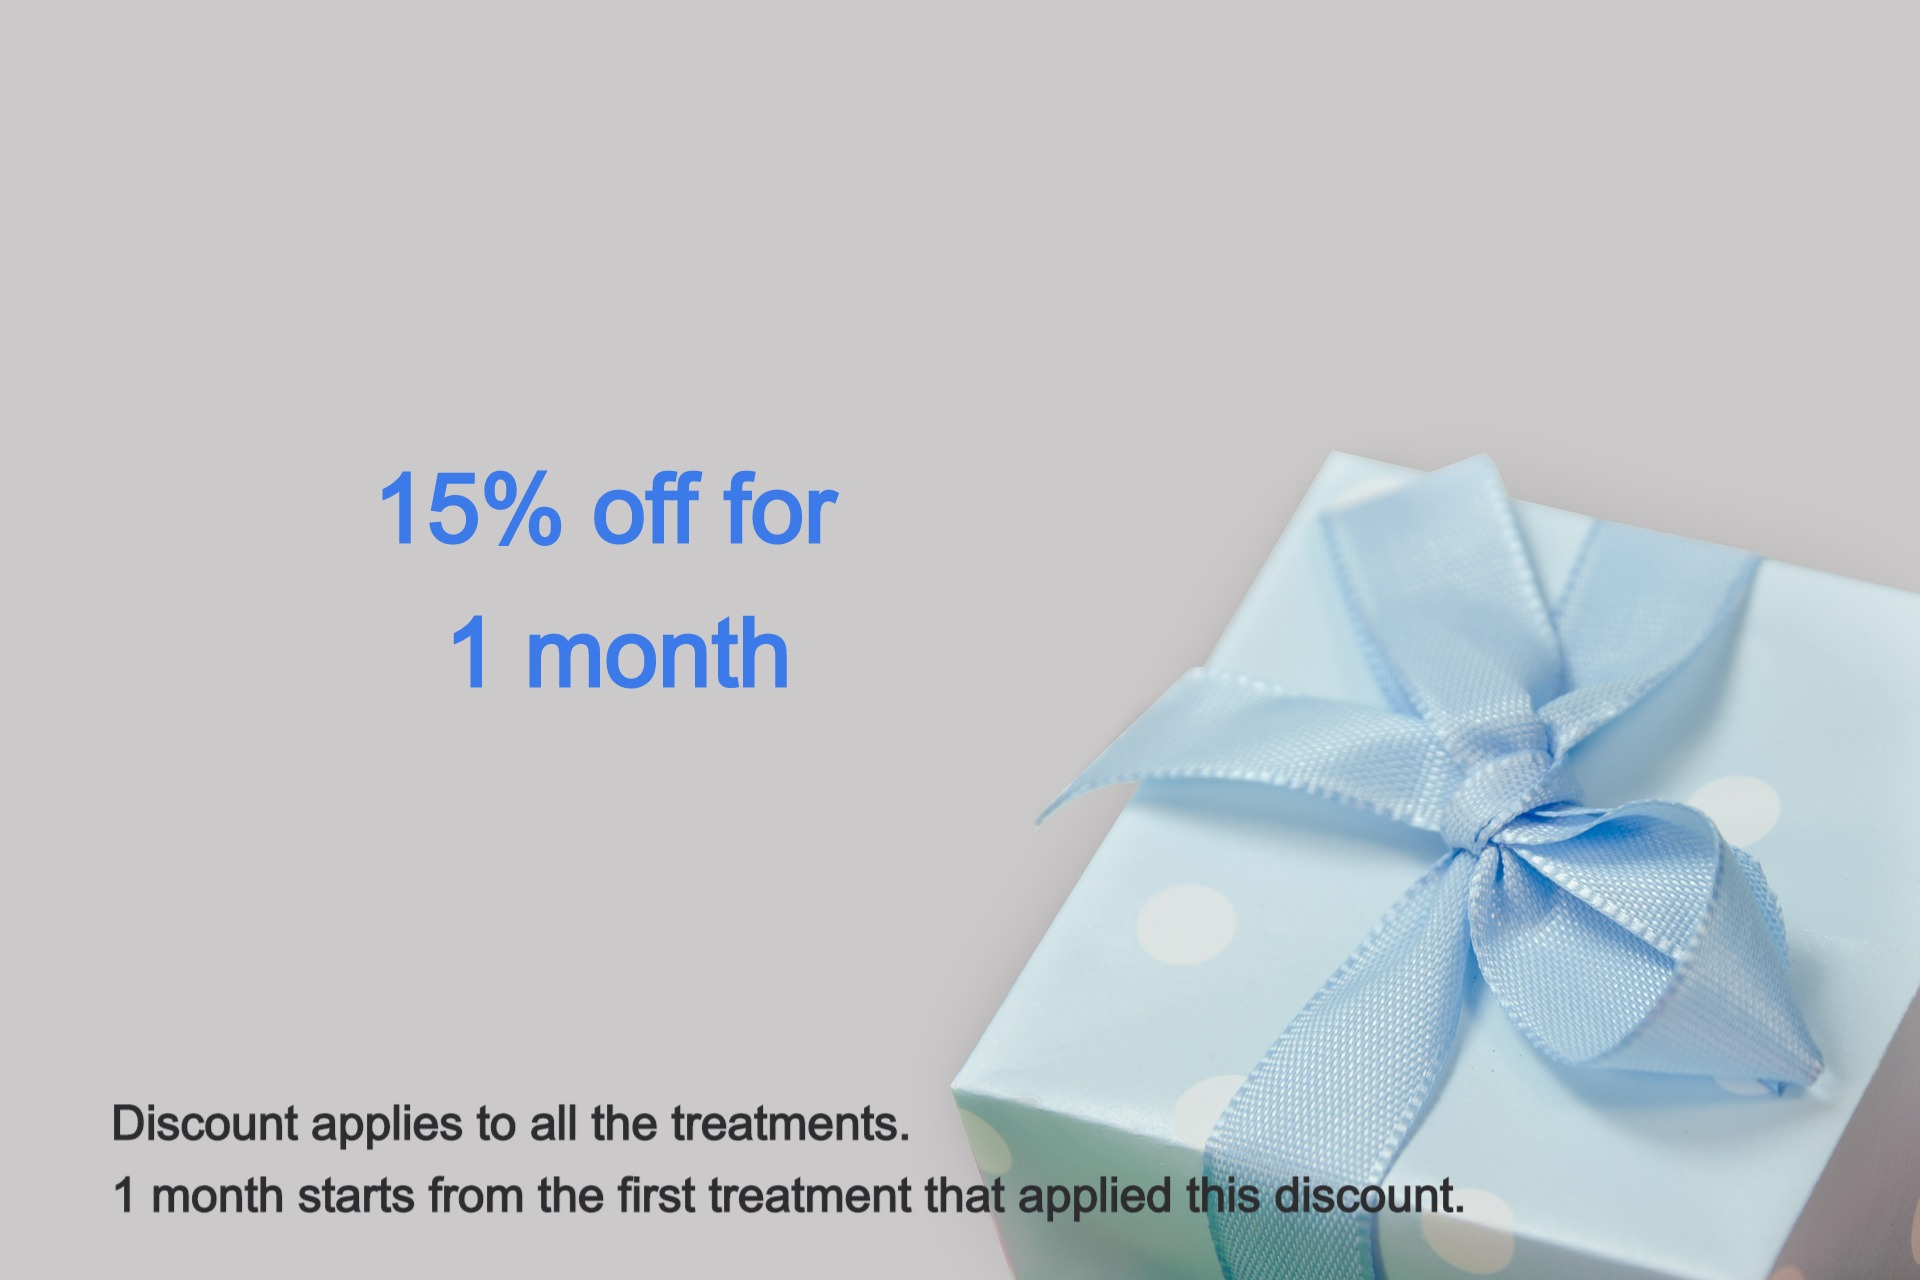 15% off for 1 month